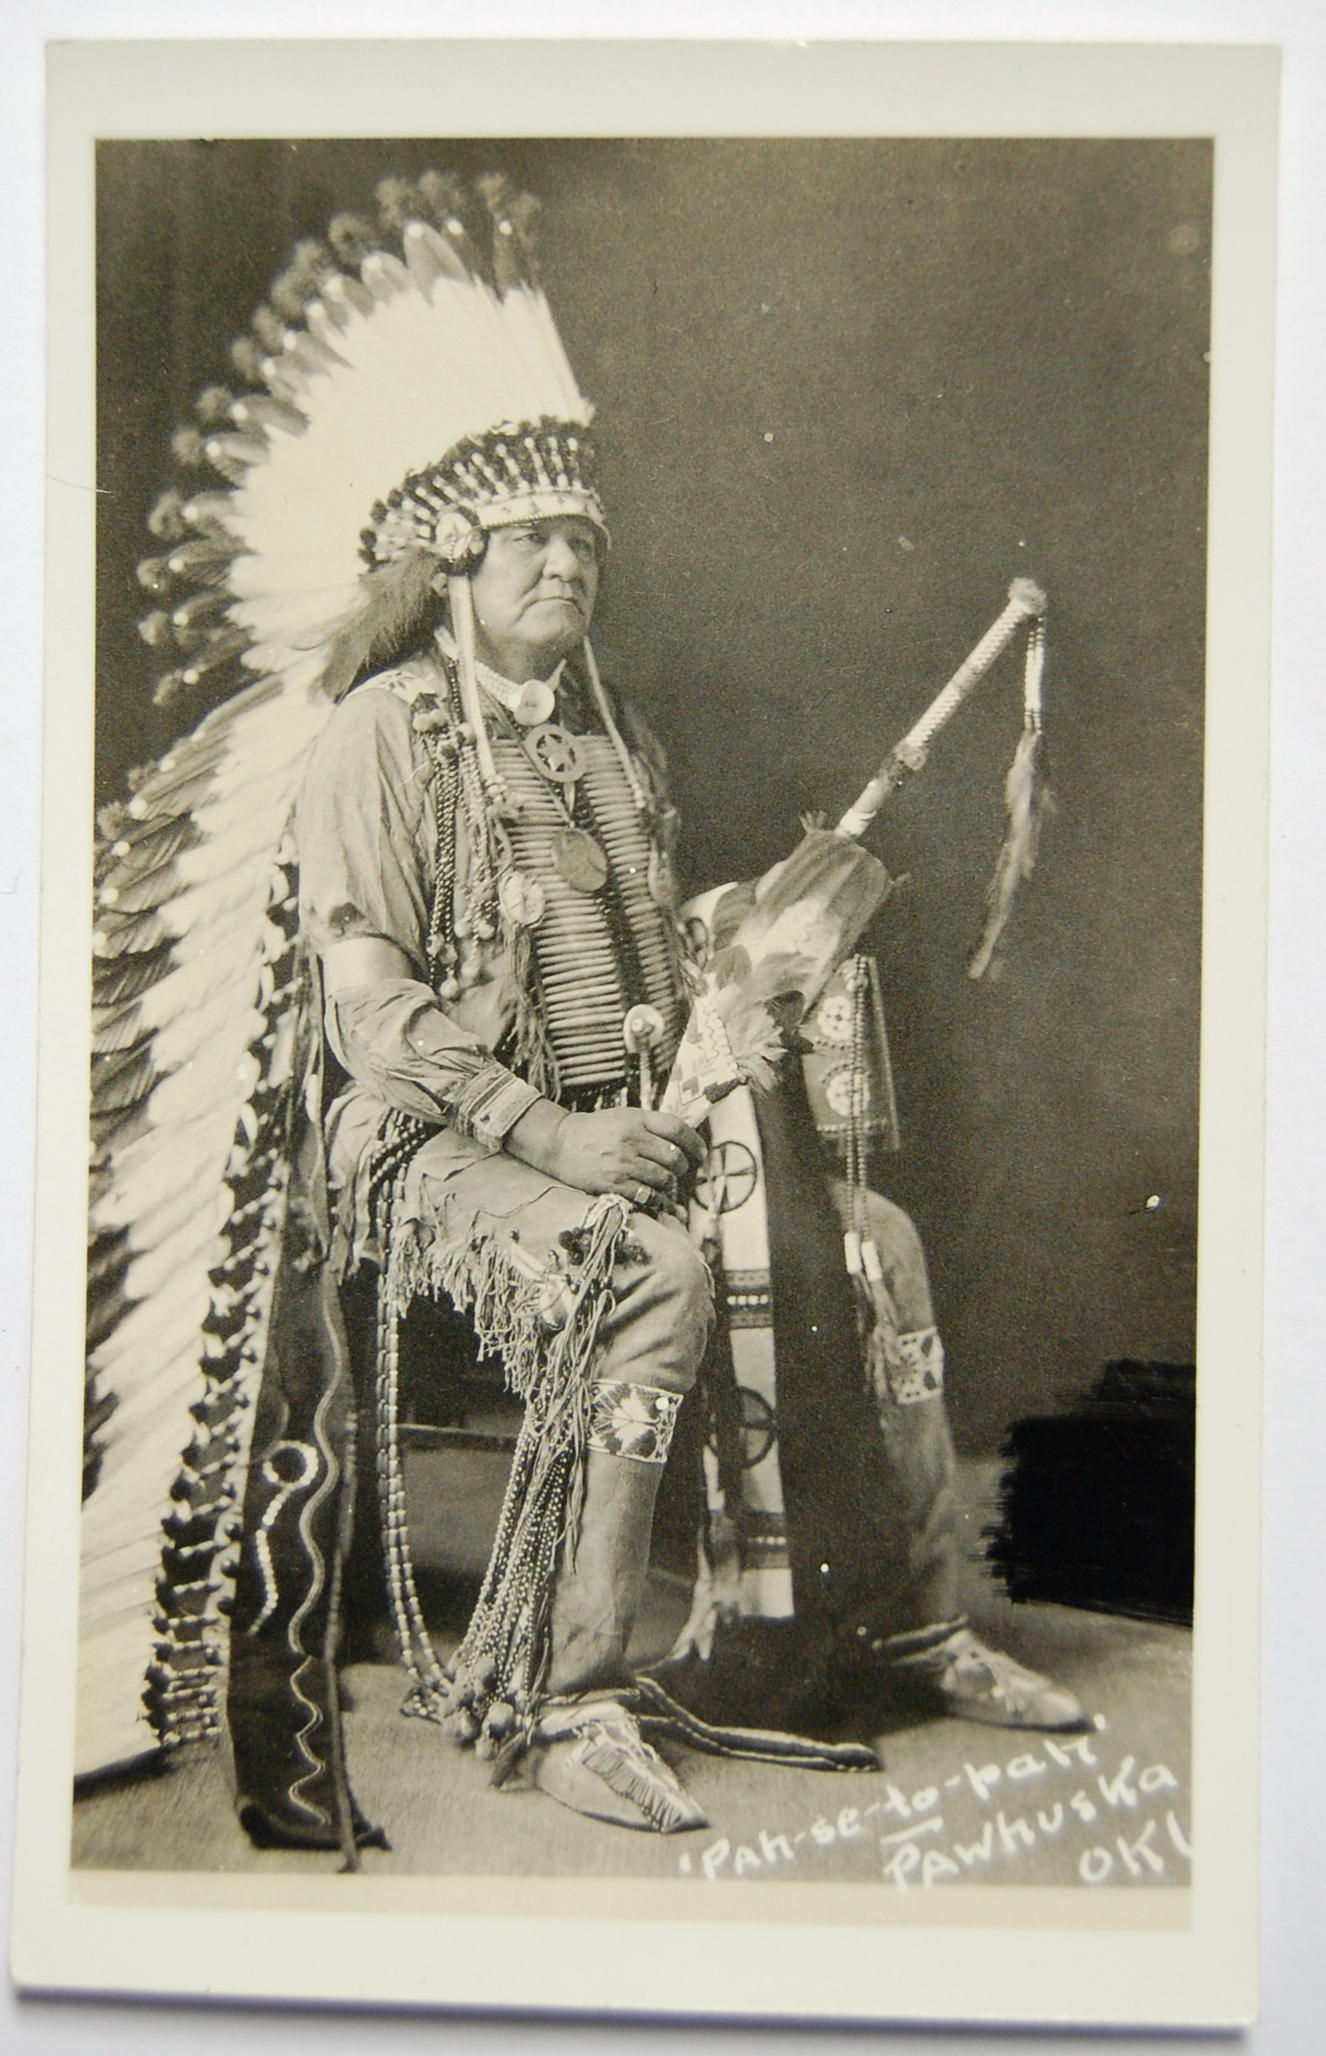 Vintage postcard of Osage Indian chief, Pawhuska, Oklahoma